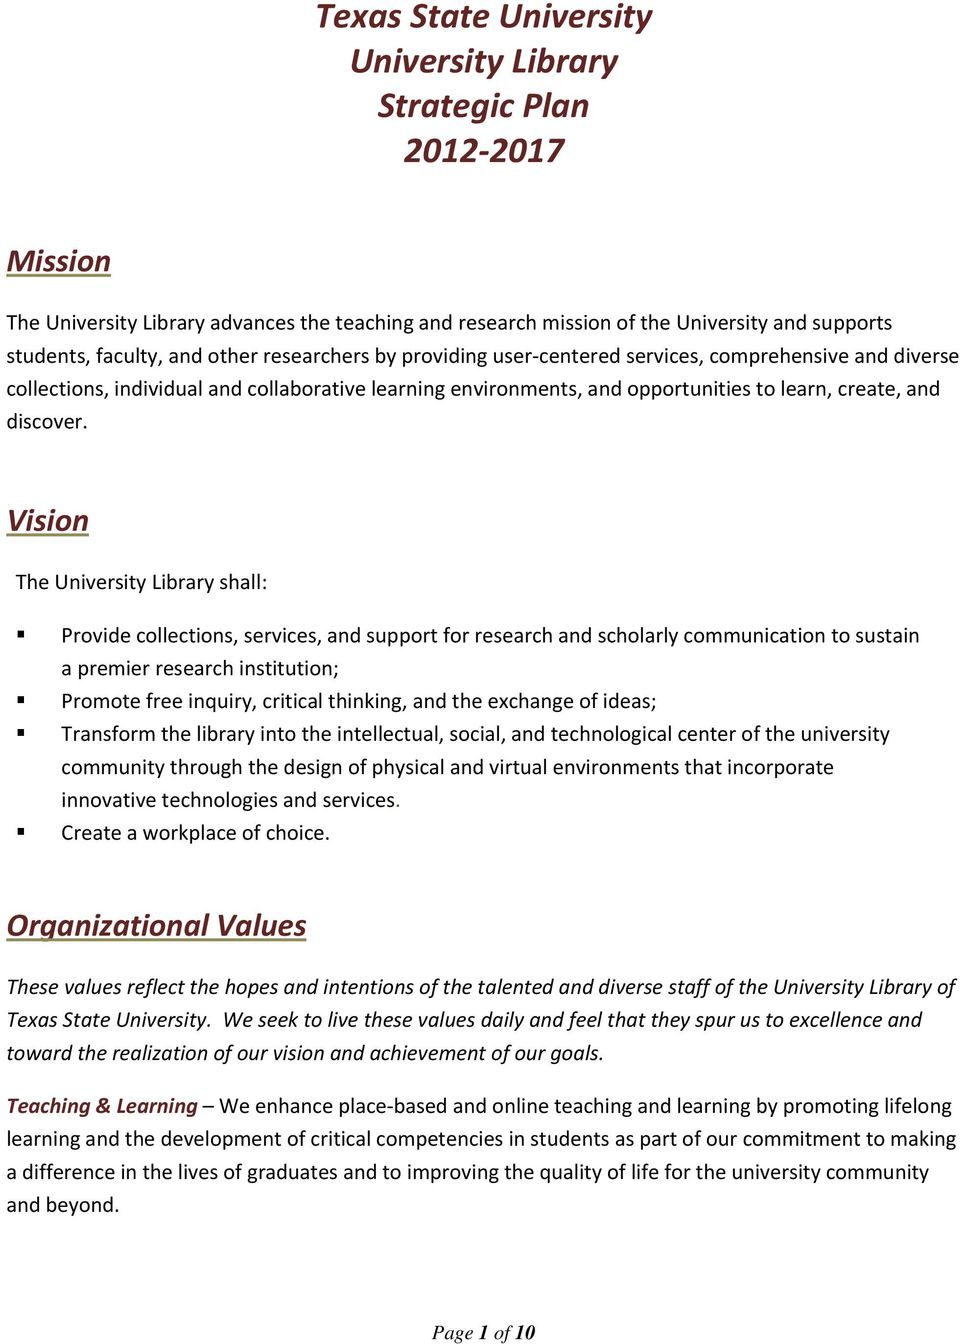 Vision The University Library shall: Provide collections, services, and support for research and scholarly communication to sustain a premier research institution; Promote free inquiry, critical